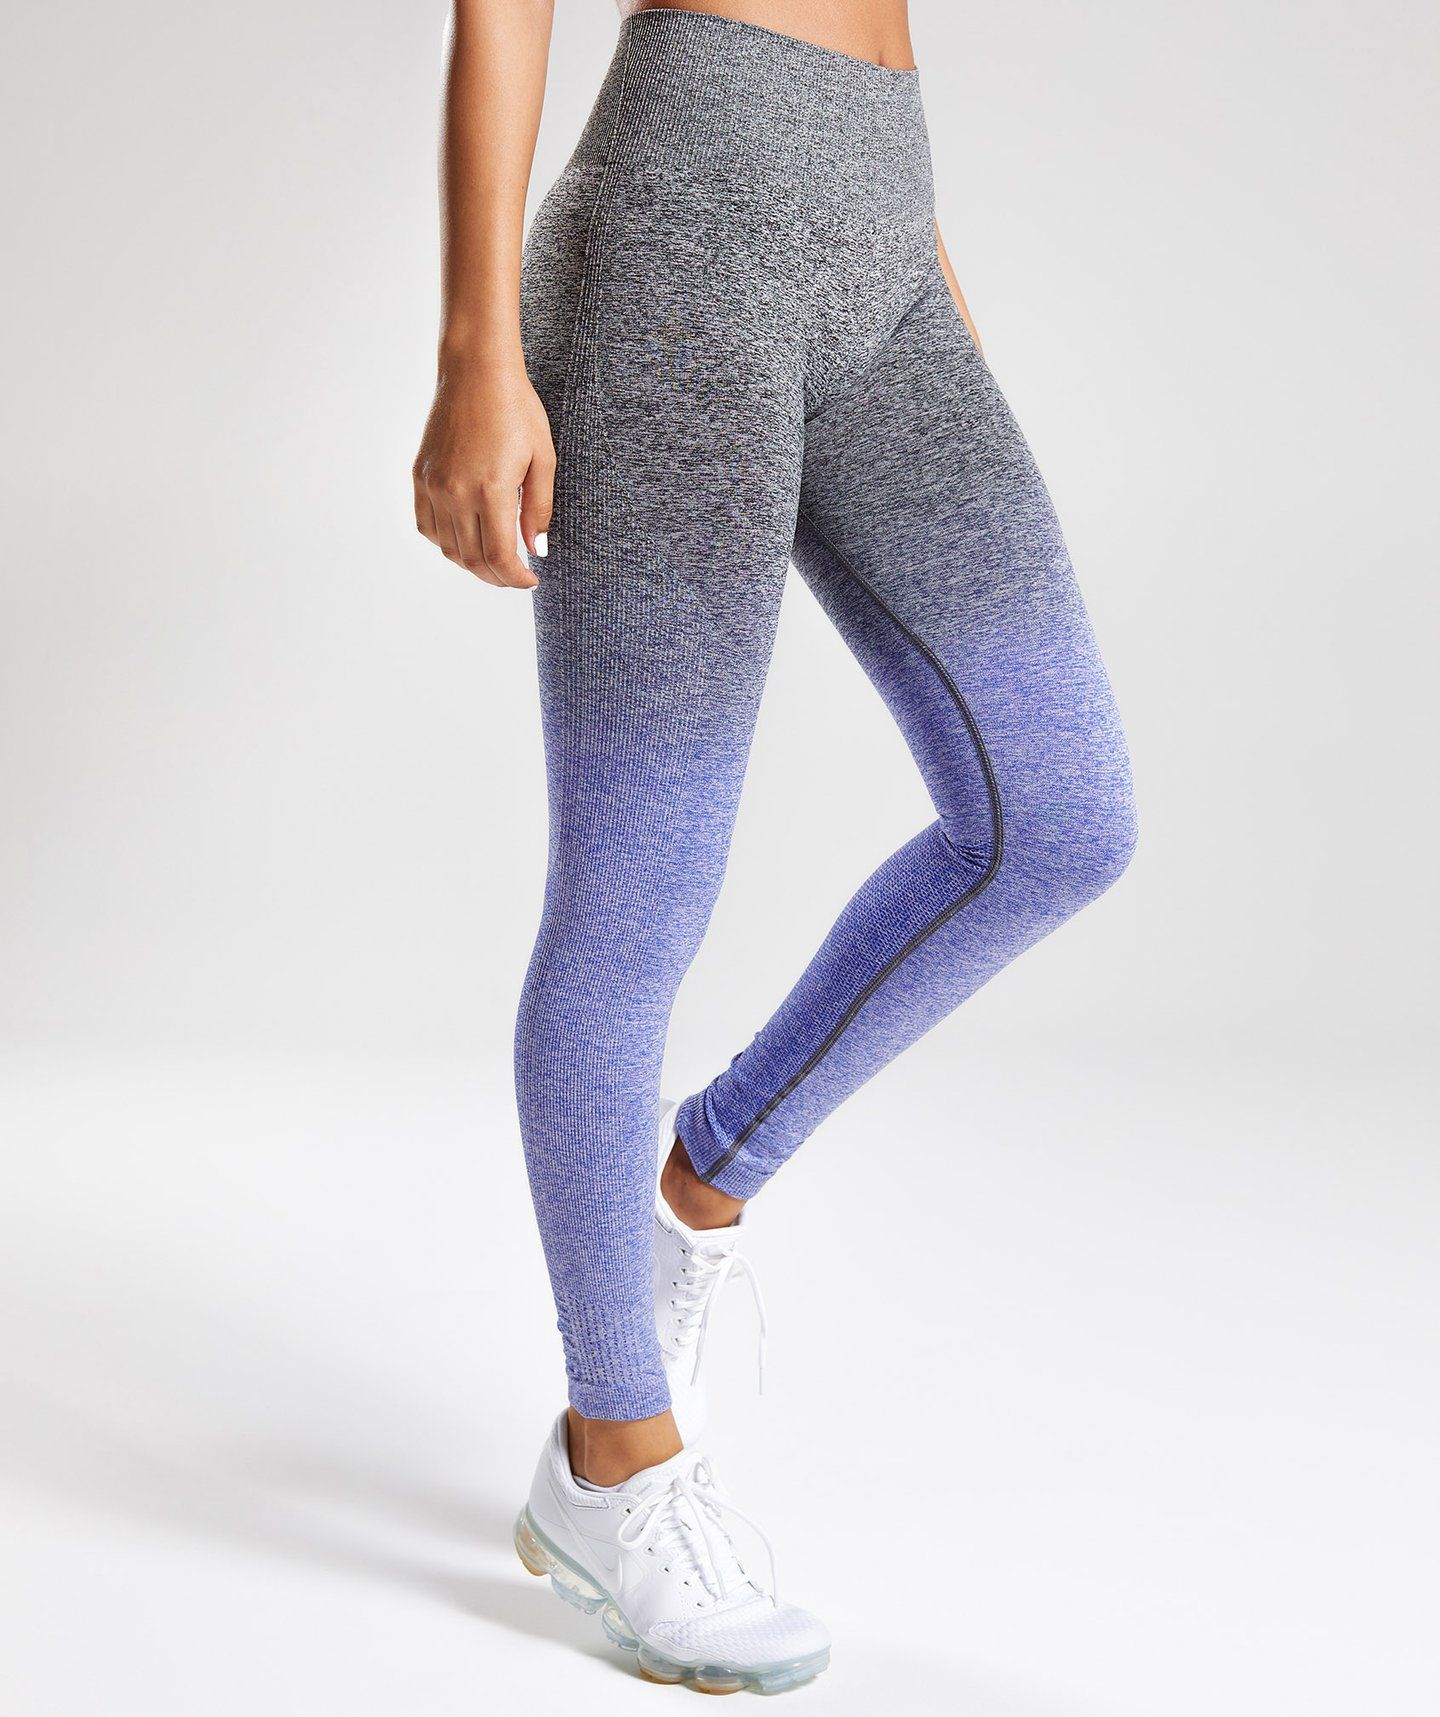 3e7d36459e62b8 Gymshark Ombre Seamless Leggings - Indigo/Black 4 | My favorite ...